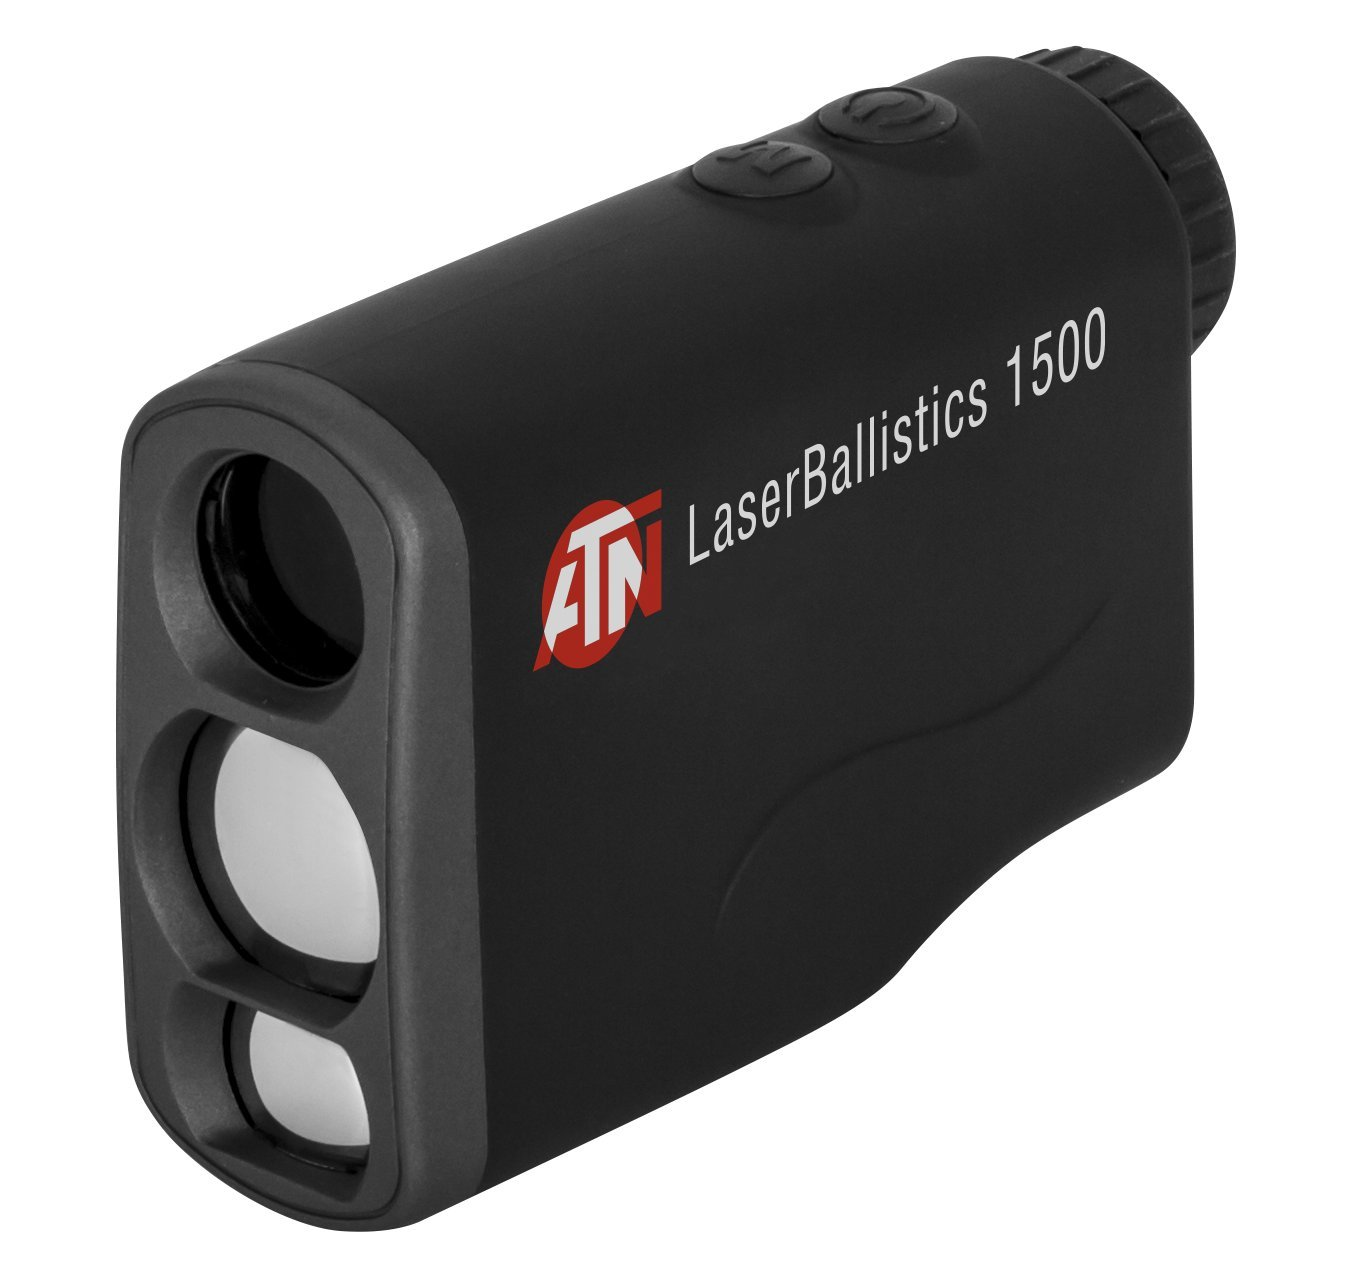 ATN Laser Ballistics 1500 Smart Laser Rangefinder w/Bluetooth, device works with Mil and MOA scopes using ATN Ballistic Calculator App by ATN